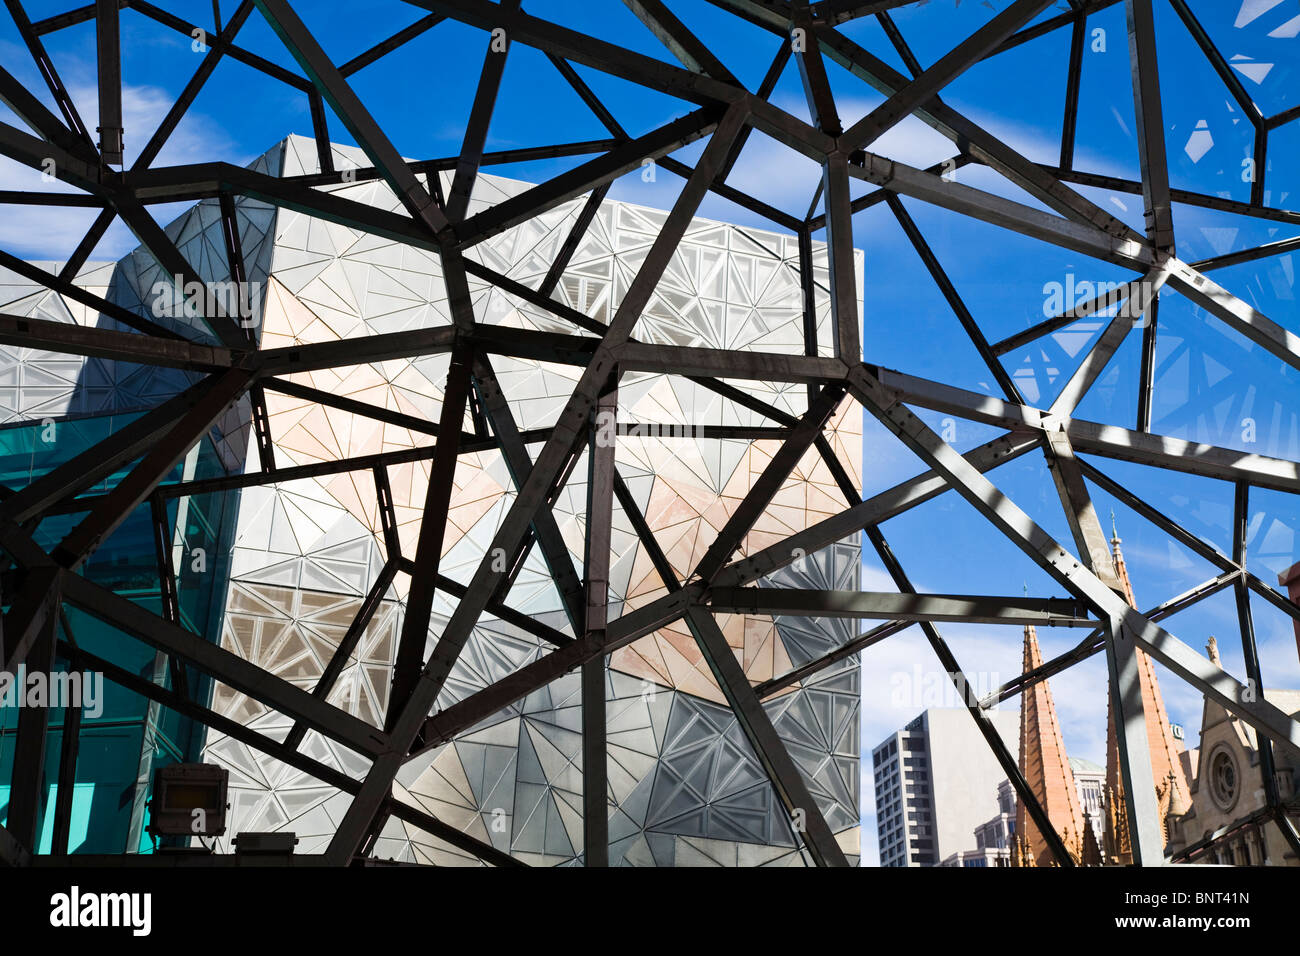 Iconic architecture of Federation Square in Melbourne, Victoria, AUSTRALIA. - Stock Image